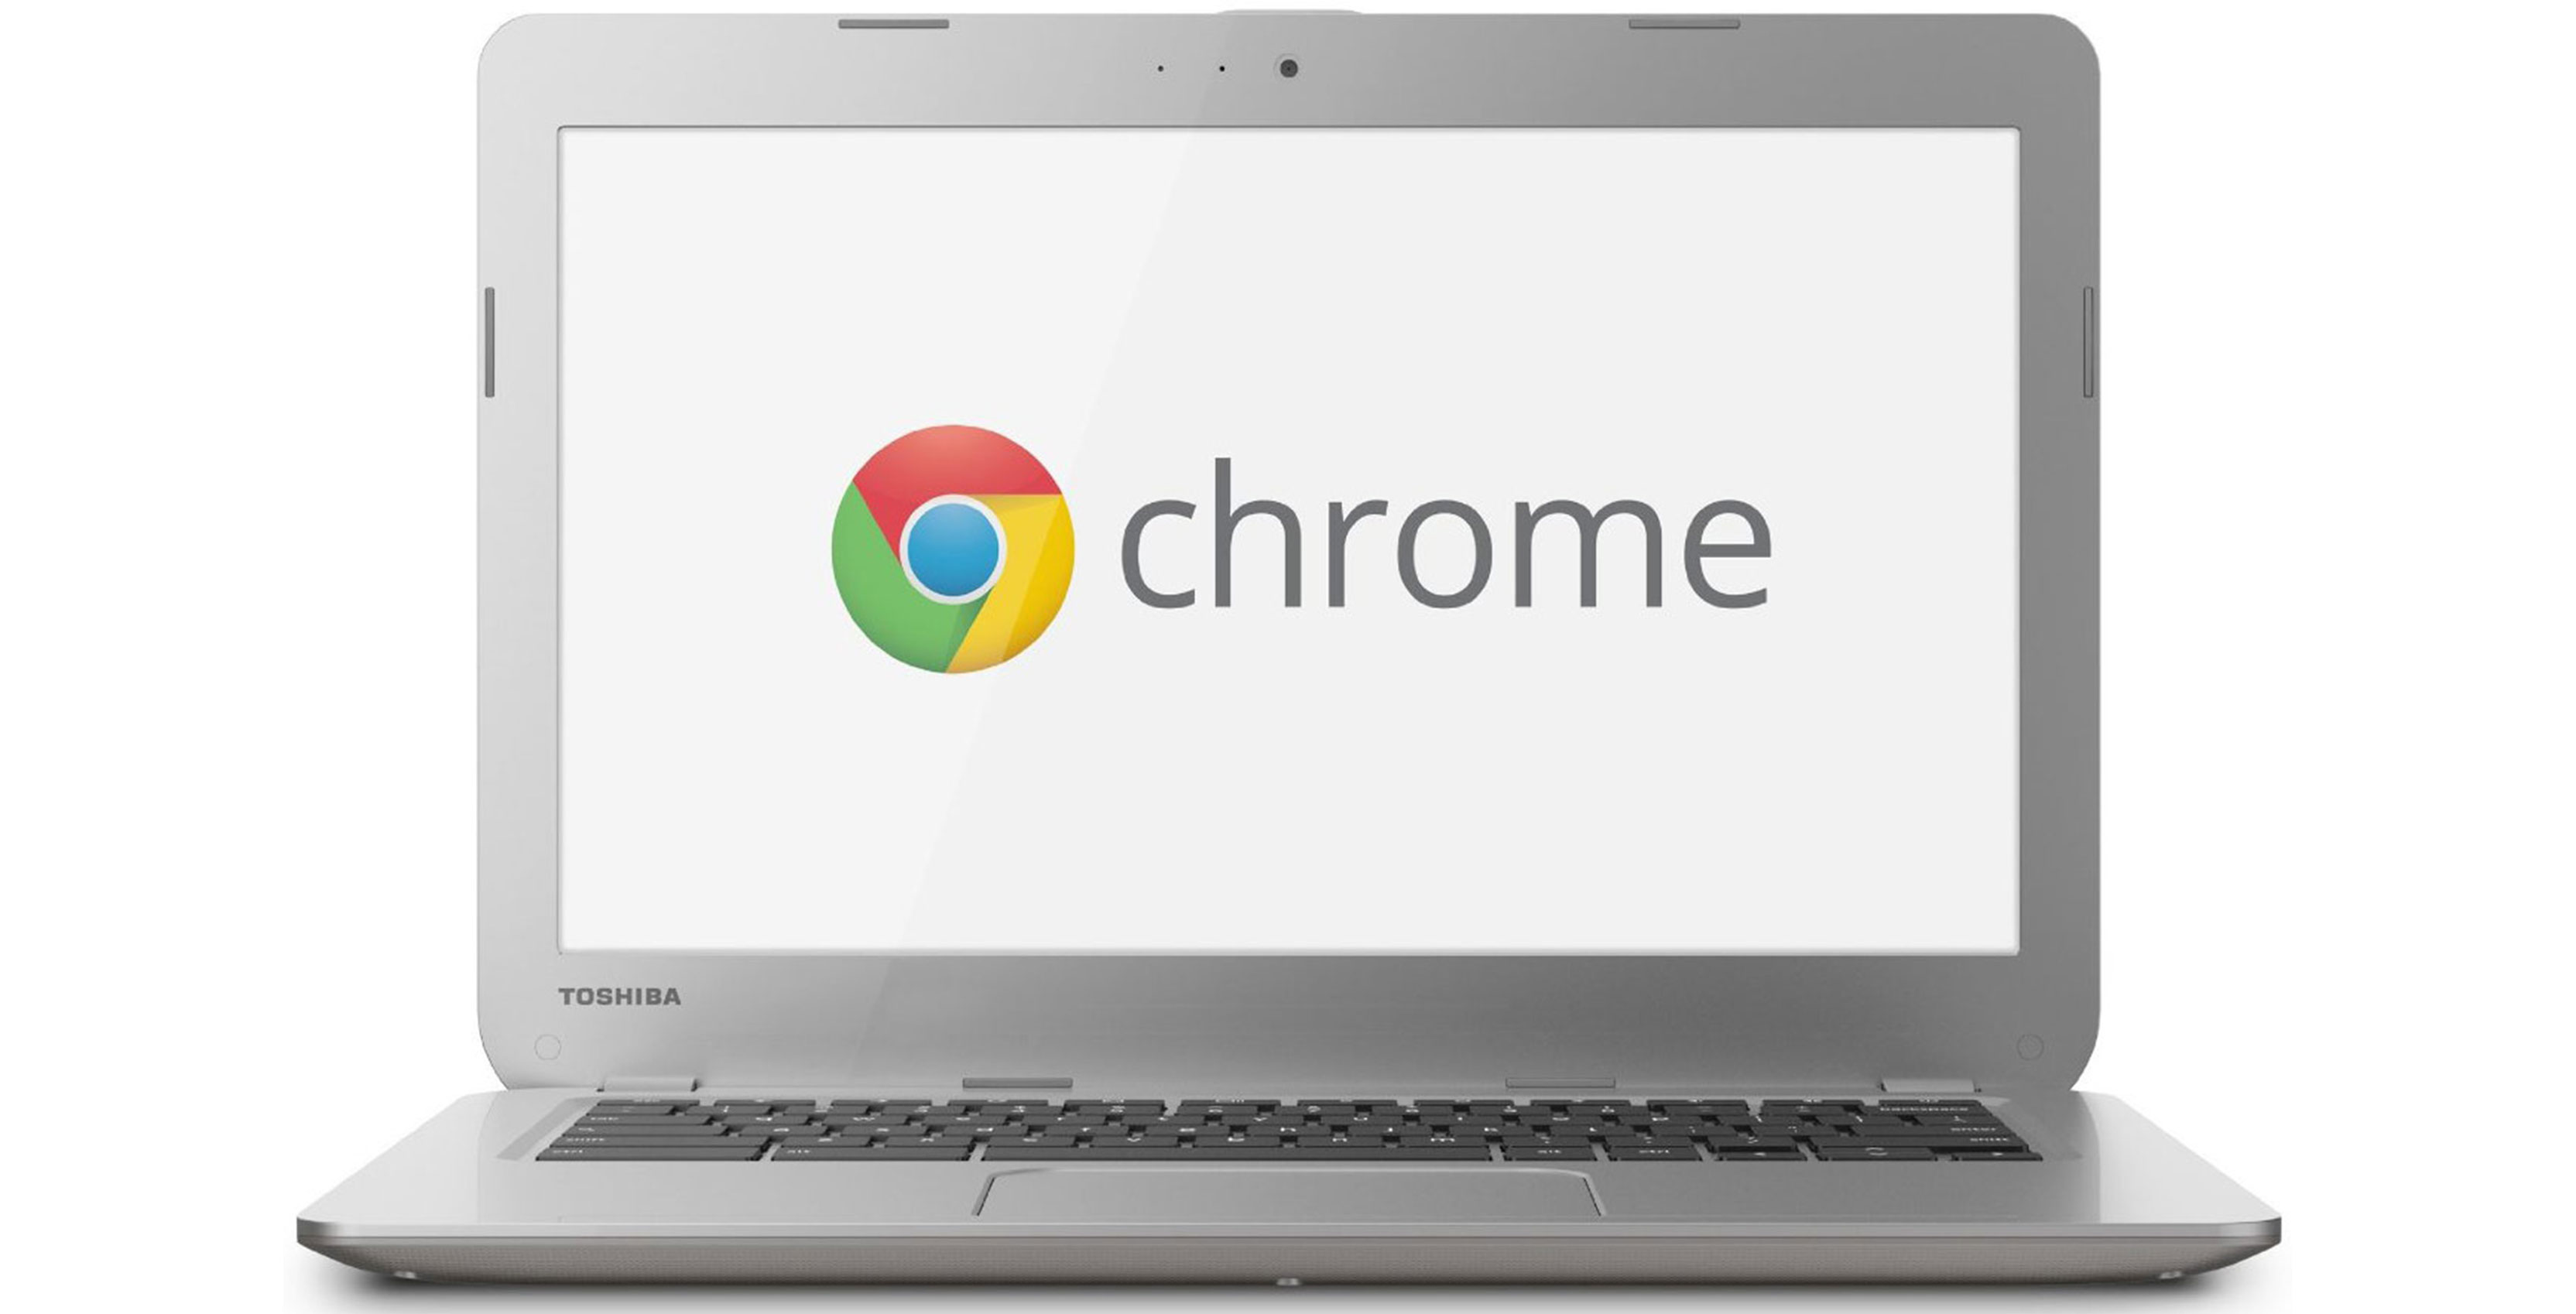 Chromebooks may become recoverable using an Android device soon ...